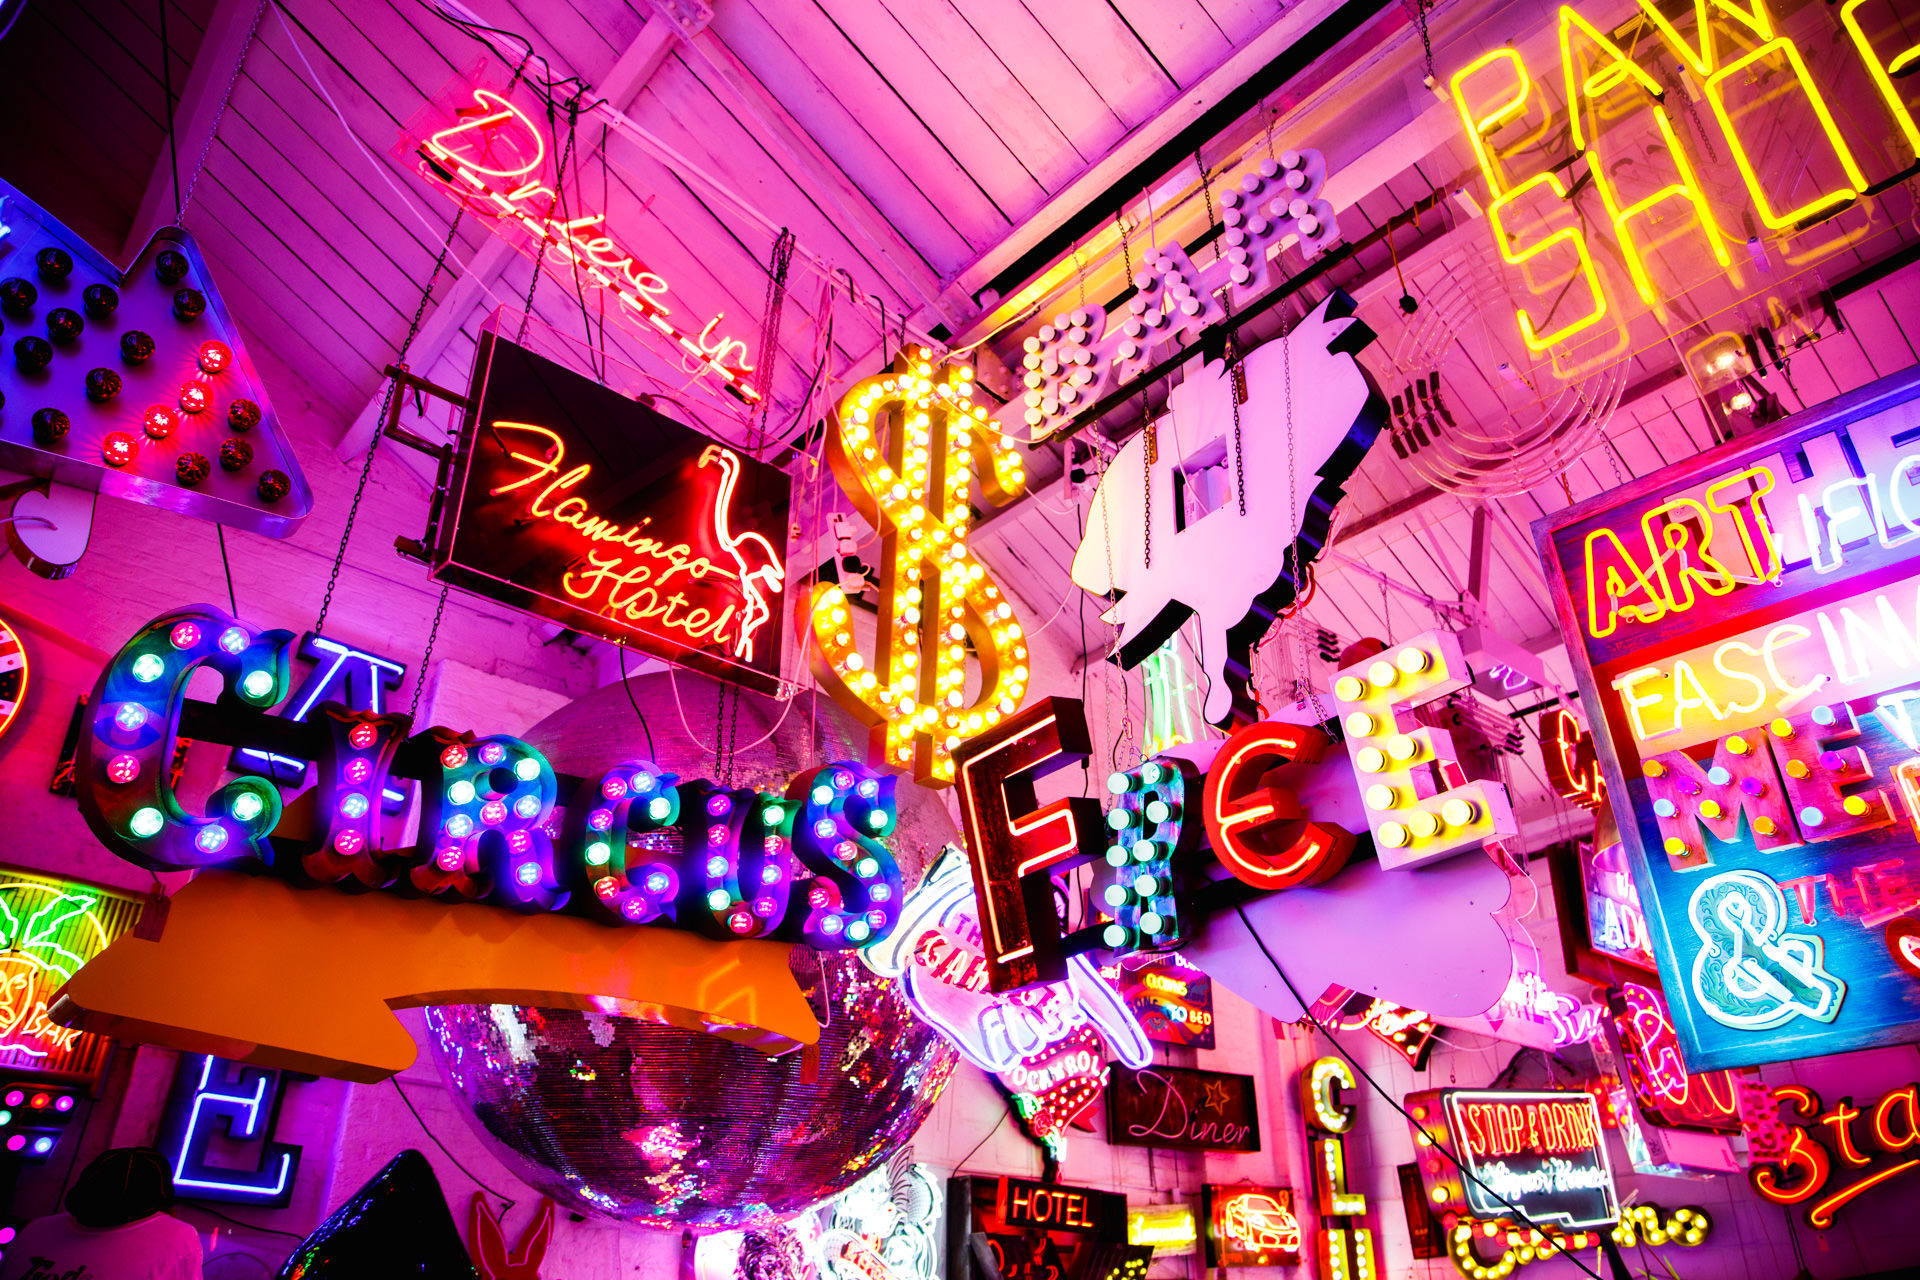 October - One of my favourite places and blogs of the year;  Gods Own Junkyard.  This neon-soaked place houses many lights and artwork by Chris Bracey. A colour fest for the eyes! (  blog here  )